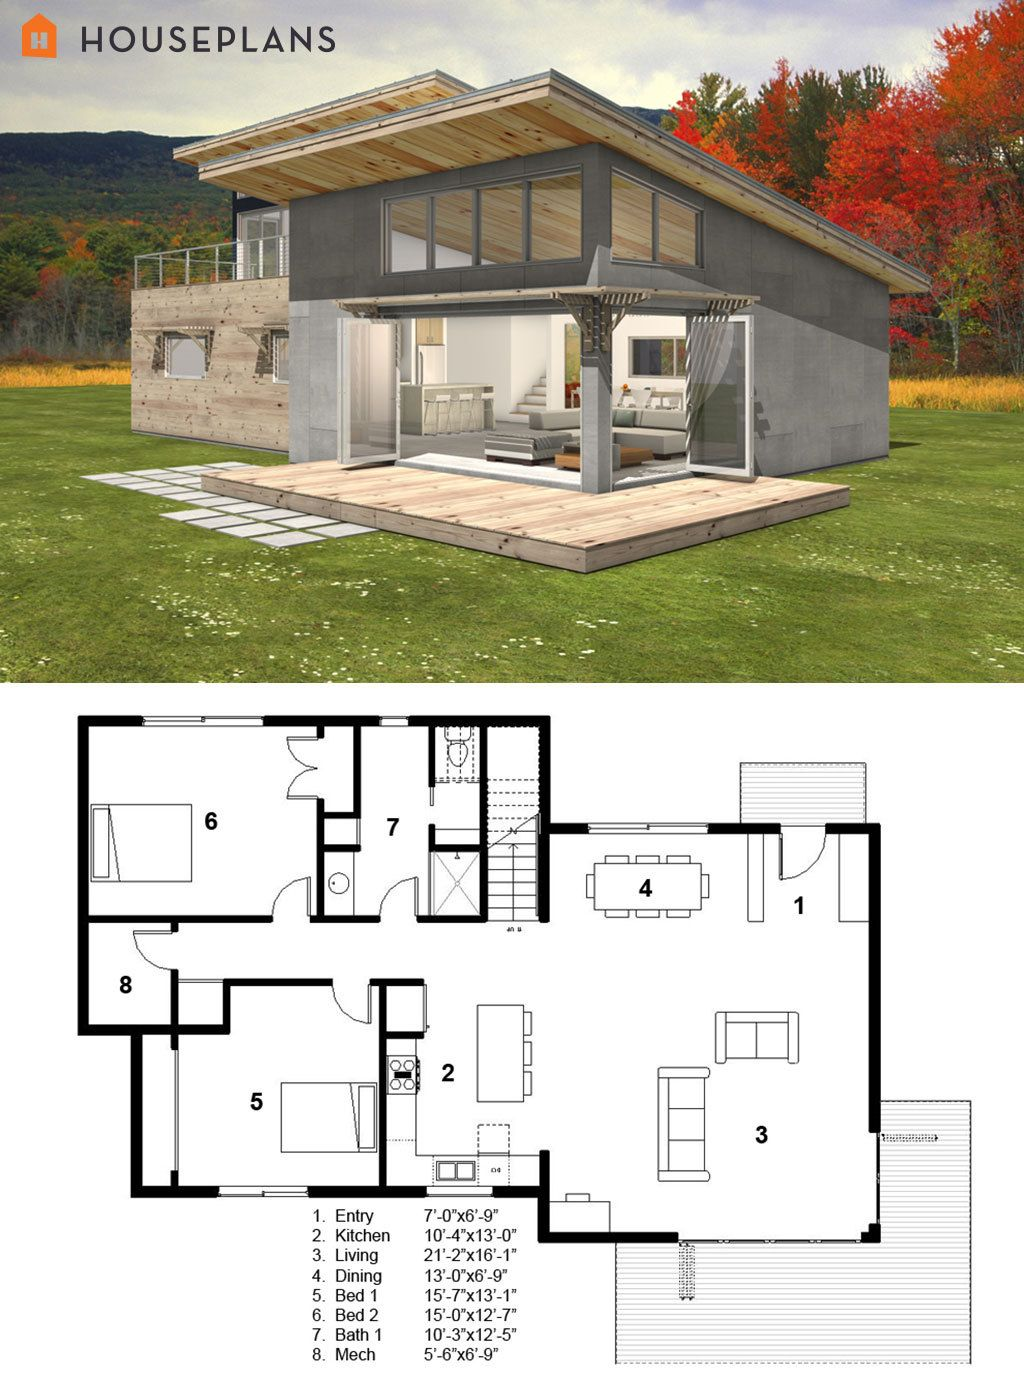 Small modern cabin house plan by freegreen energy for Small modern house designs and floor plans